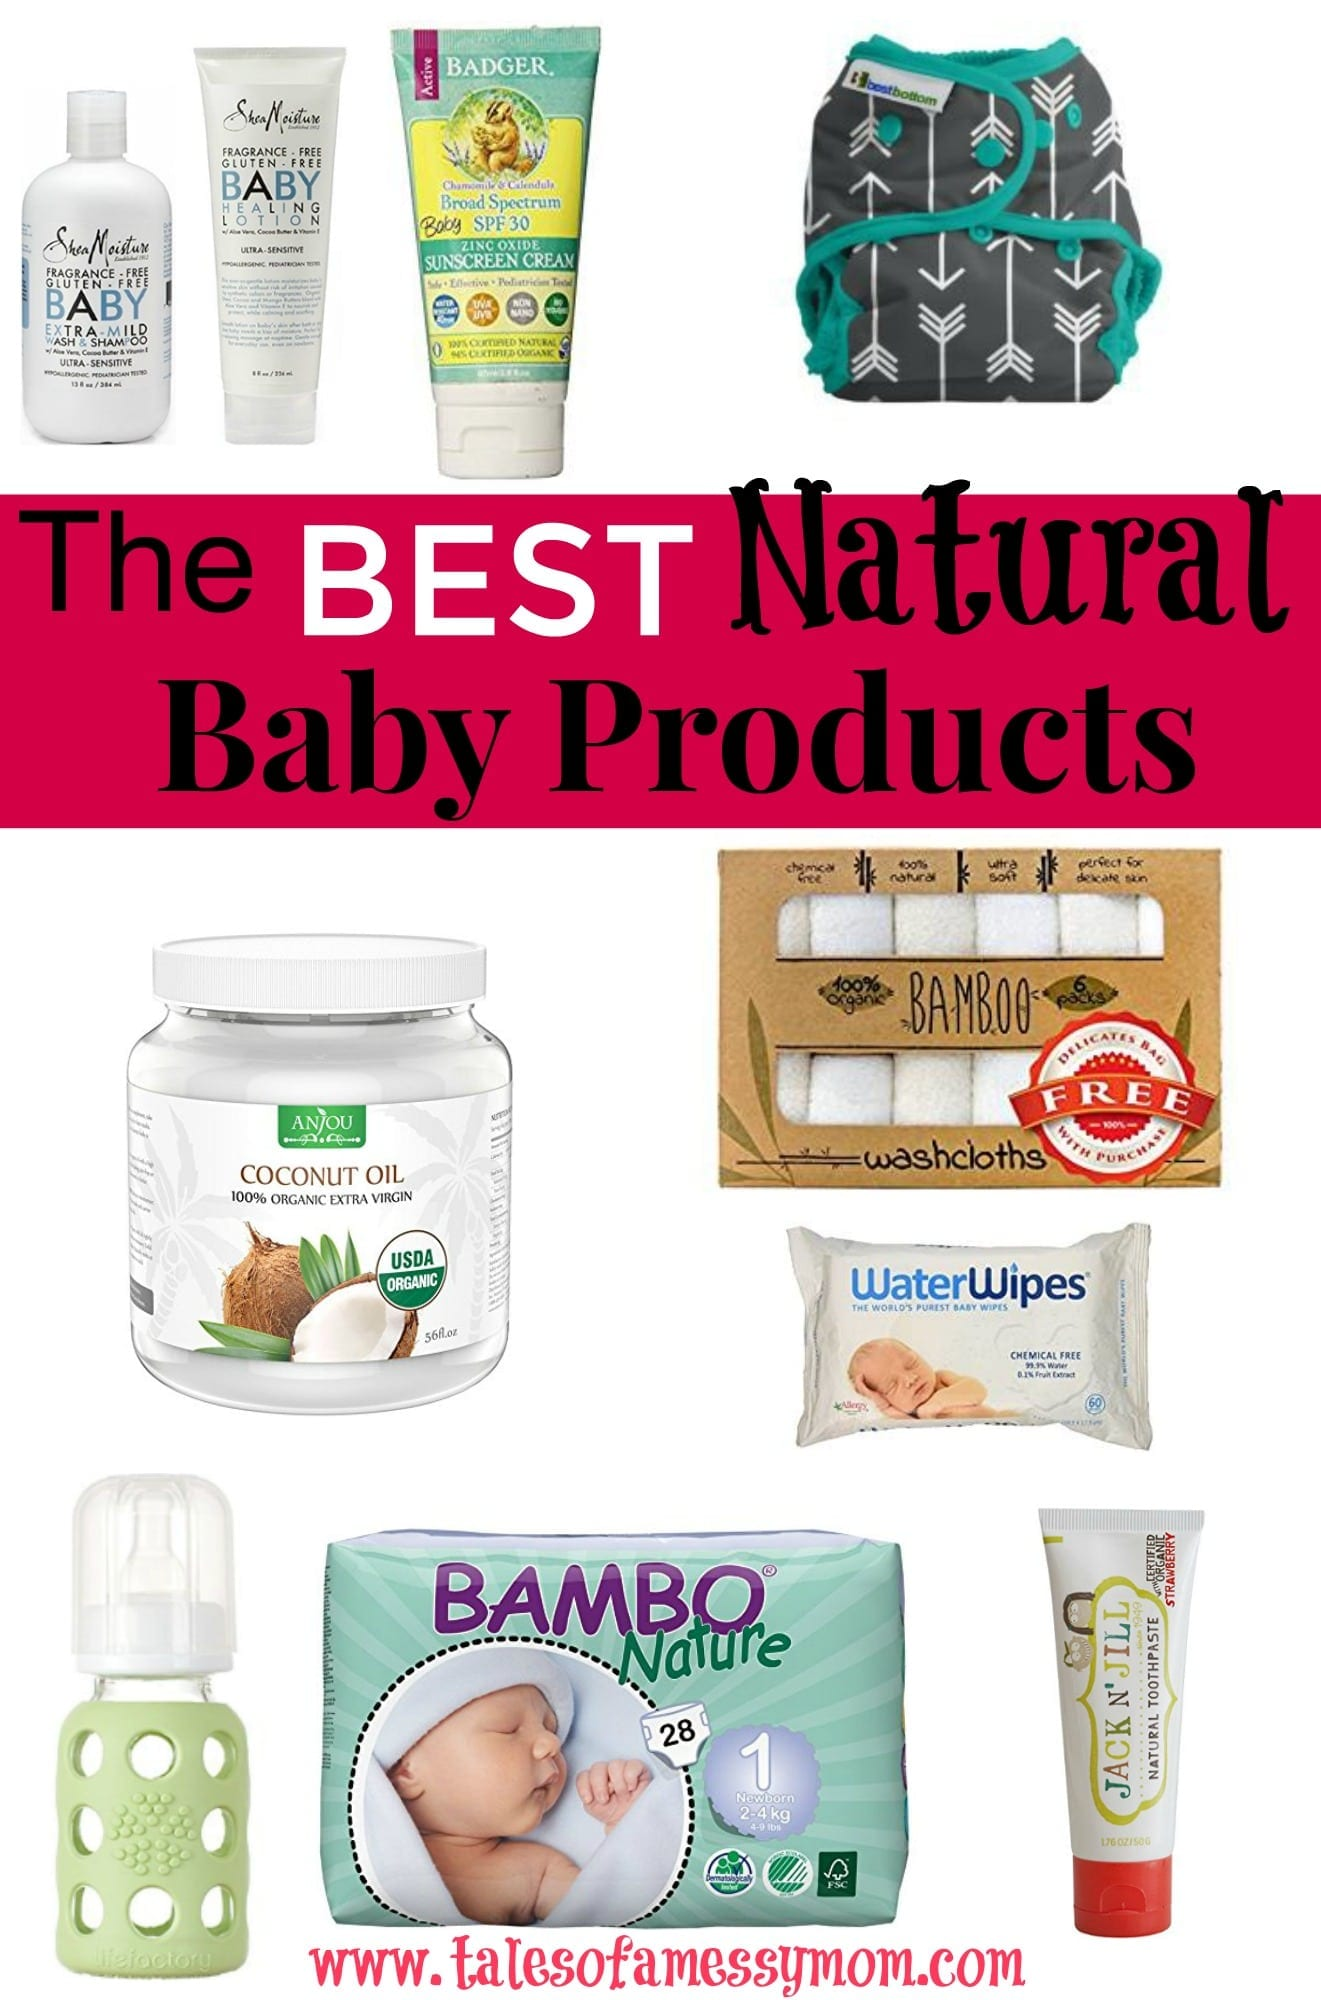 Babyganics was bought out by SC Johnson, Burts Bees by Clorox, and Toms by Colgate. It's harder than ever to find truly non-toxic baby products, as these huge corporations are buying out natural companies and chaning their most loved and trusted recipes. But, with the help of the EWG and Think Dirty app, this guide was compiled for the truly best natural baby products of 2017. http://www.talesofamessymom.com